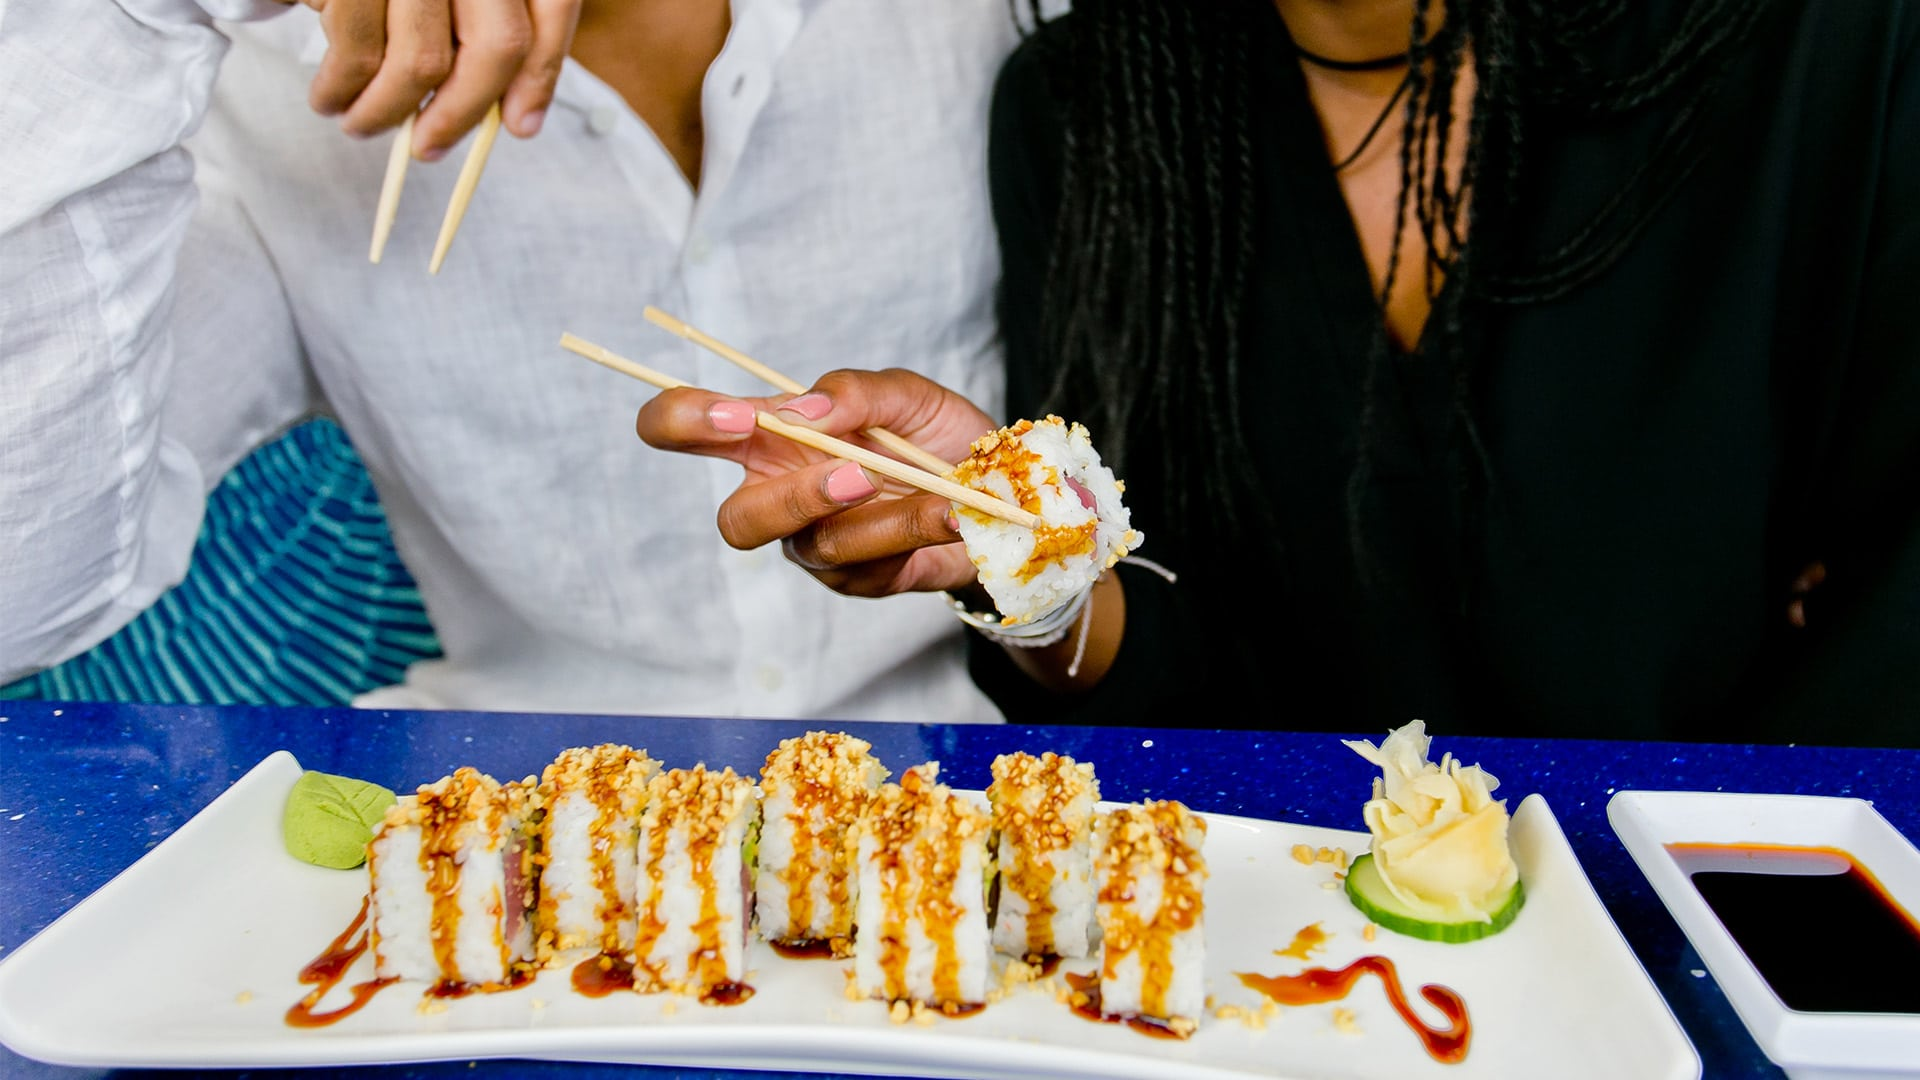 Win Dinner for 2 - Dinner Contest | Pensacola Beach Roll | H2O Grill and Bonsai Sushi Bar | Pensacola Beach FL